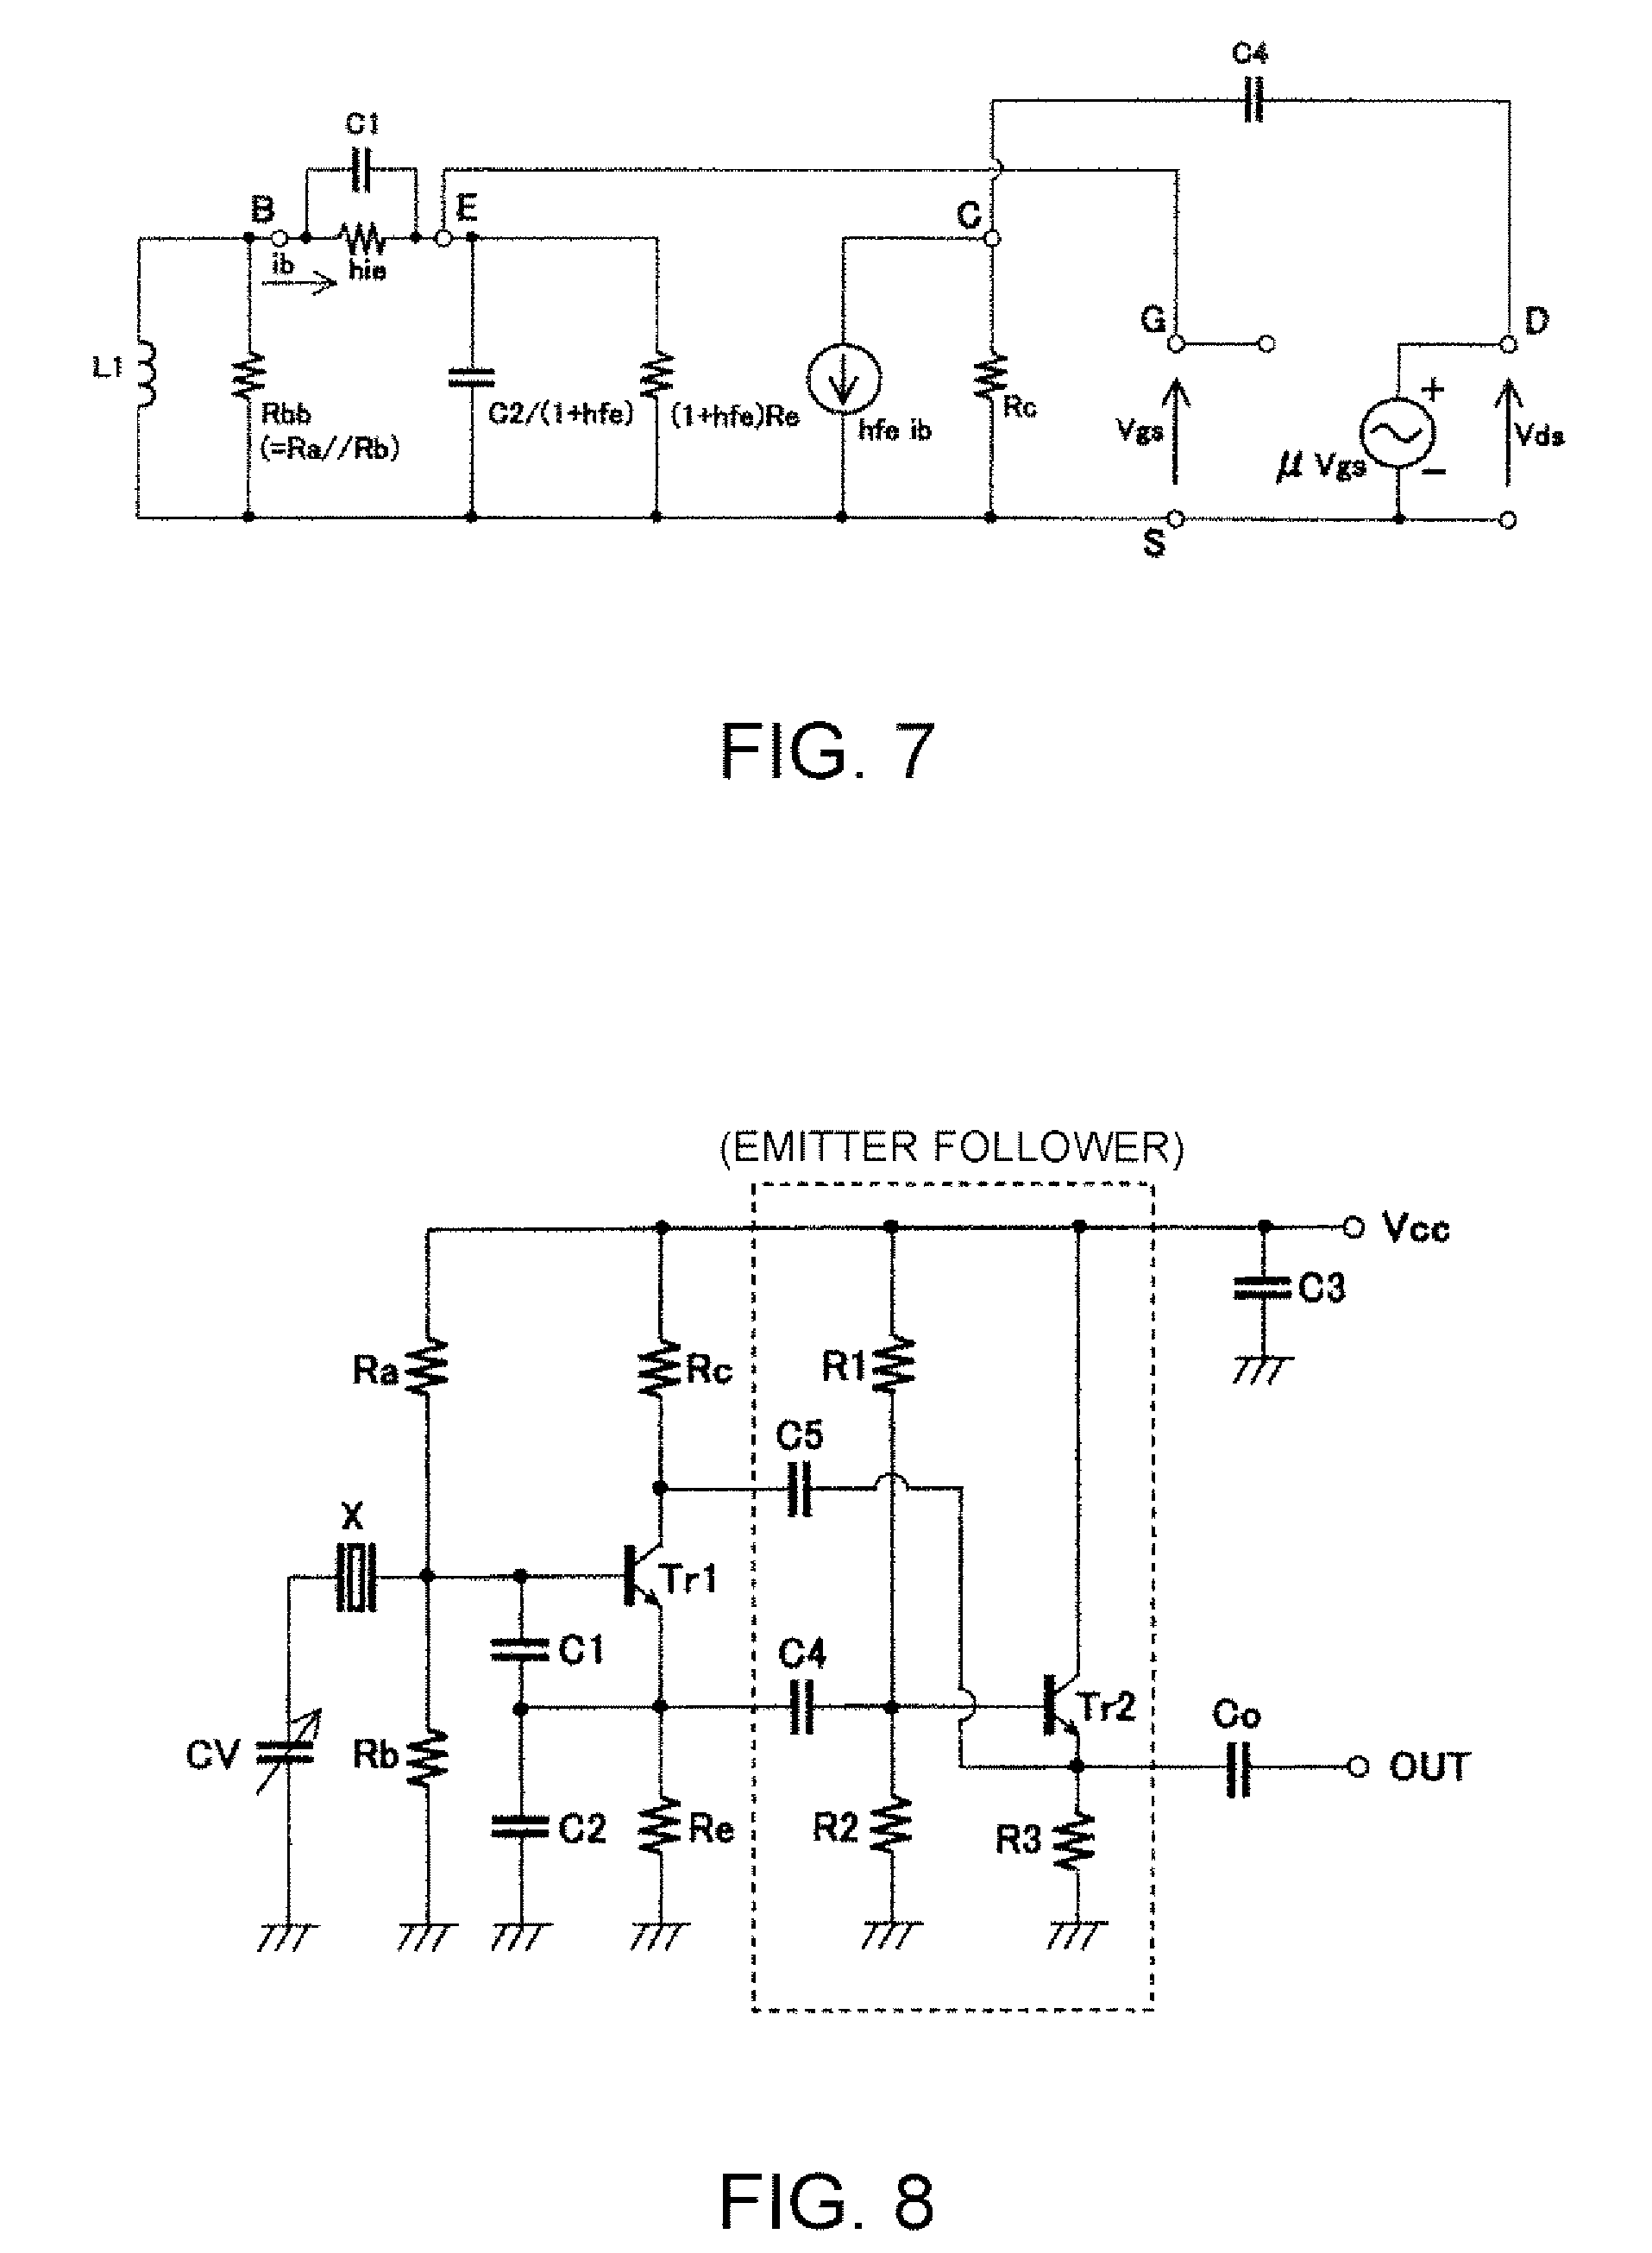 Brevet Us20070090889 High Frequency Colpitts Oscillation Circuit Emitter Follower Patent Drawing